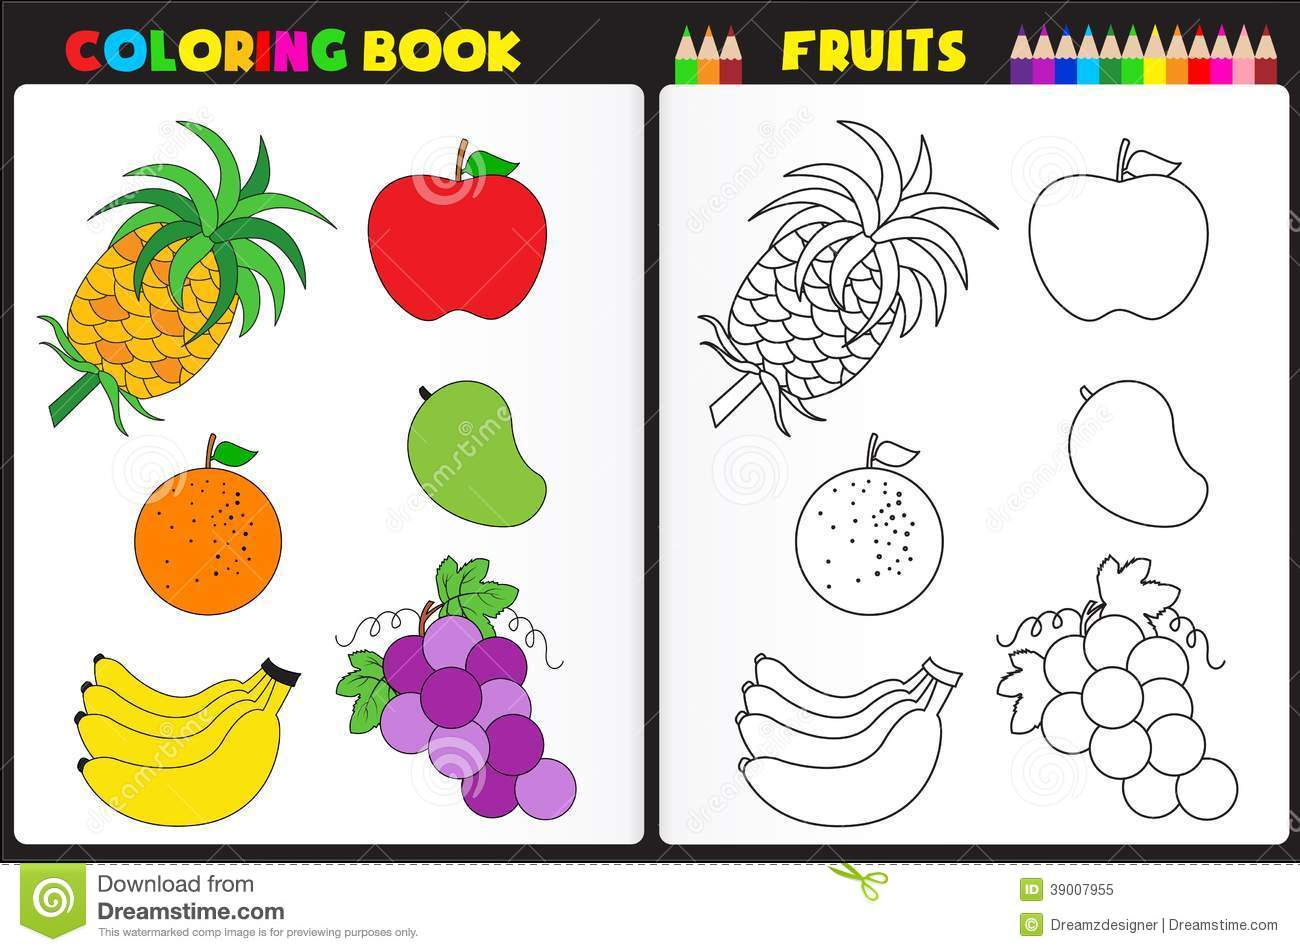 Fruits De Page De Livre De Coloriage Illustration De